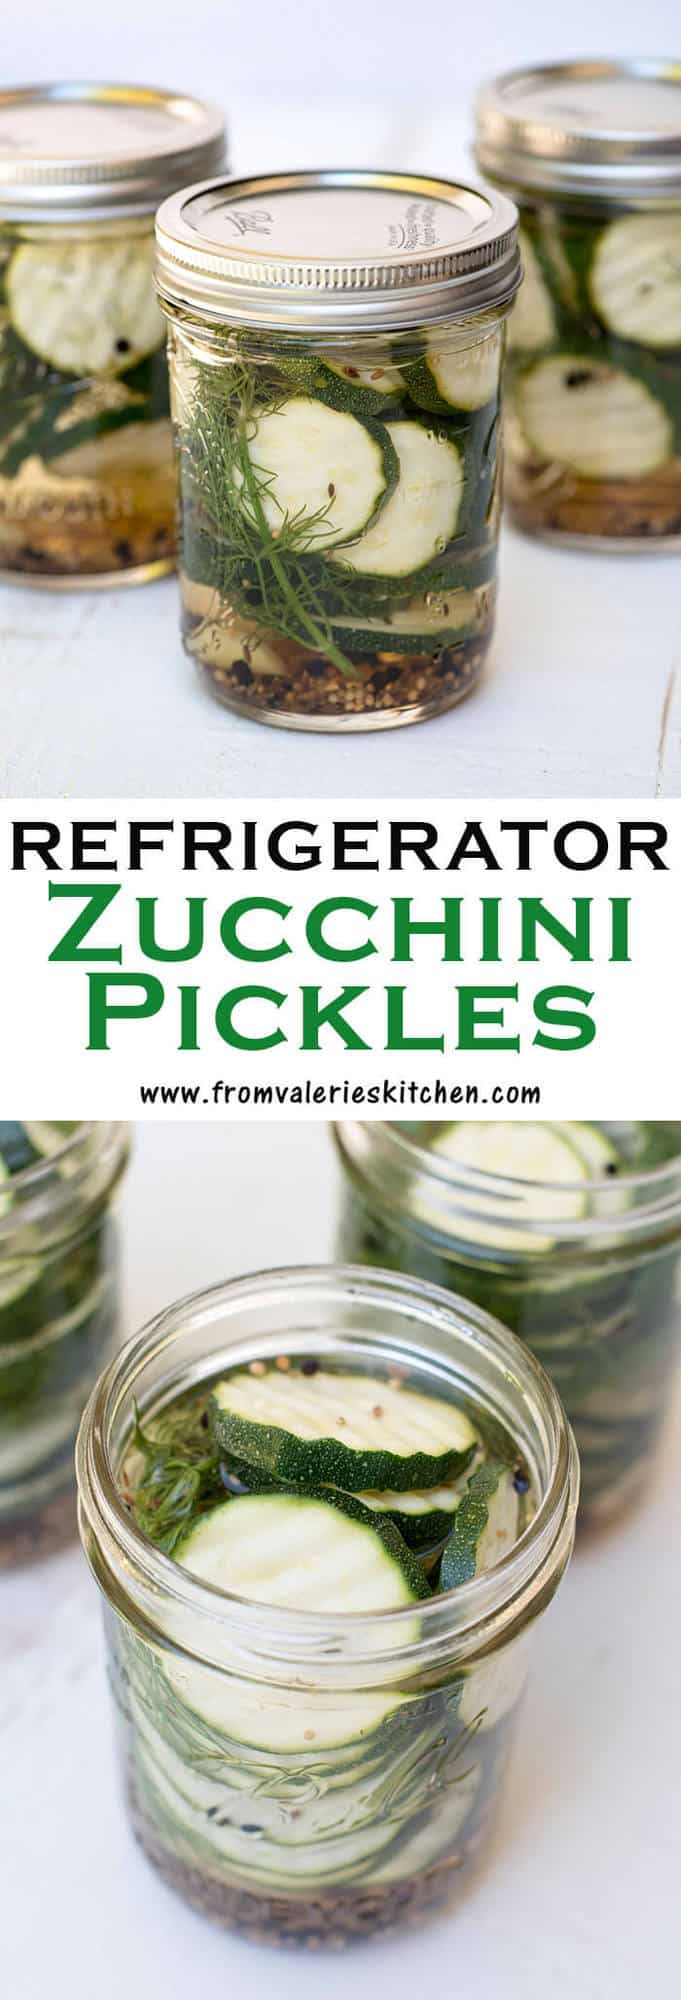 A two image vertical collage of Refrigerator Zucchini Pickles with overlay text.